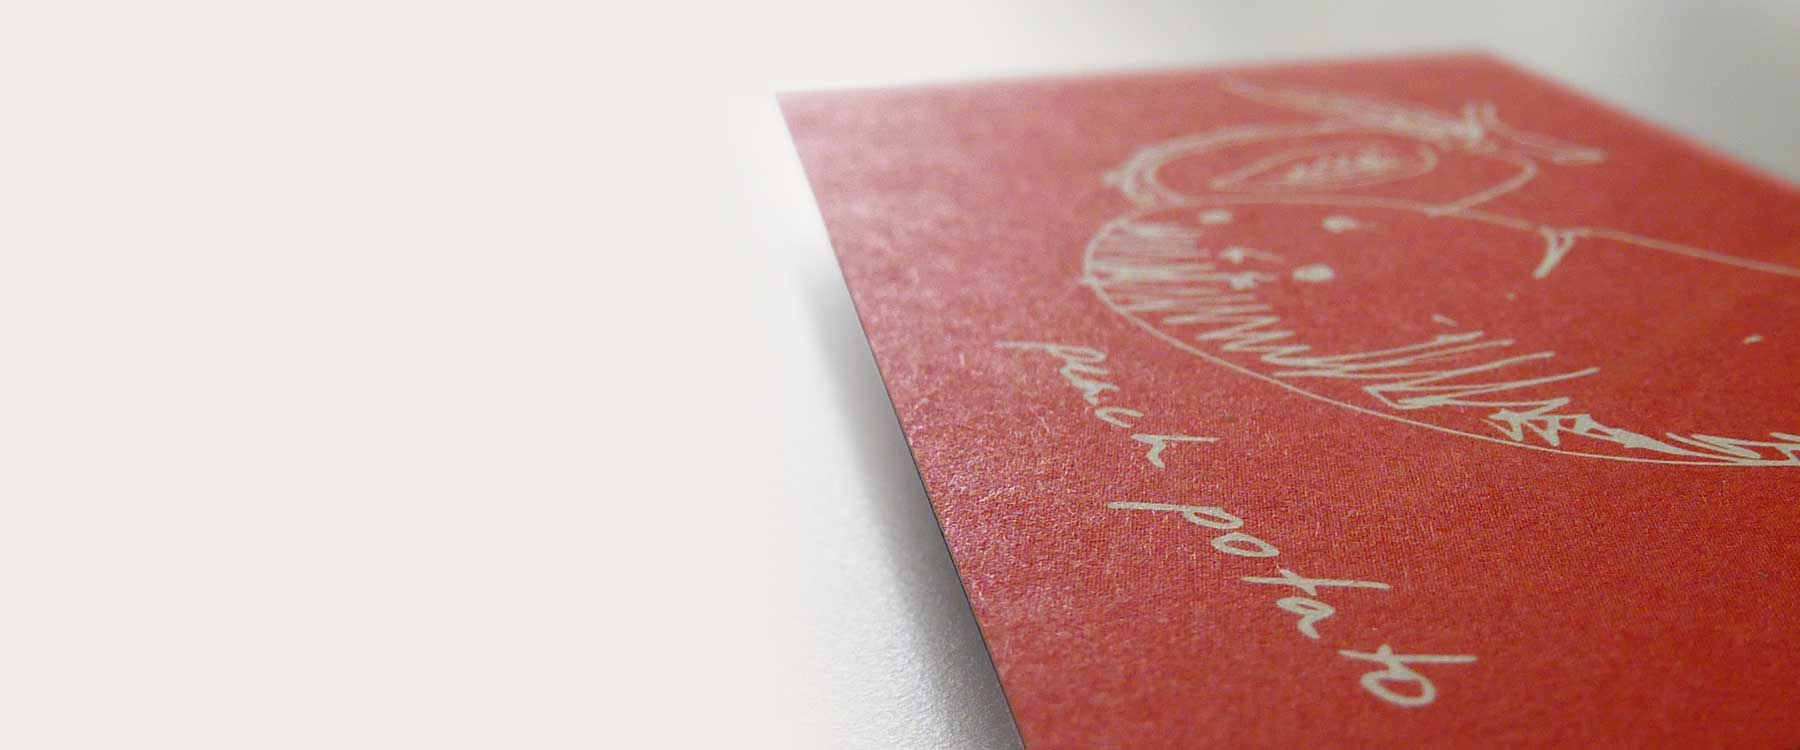 lawson-creative-eco-recycled-paper-business-card-slider